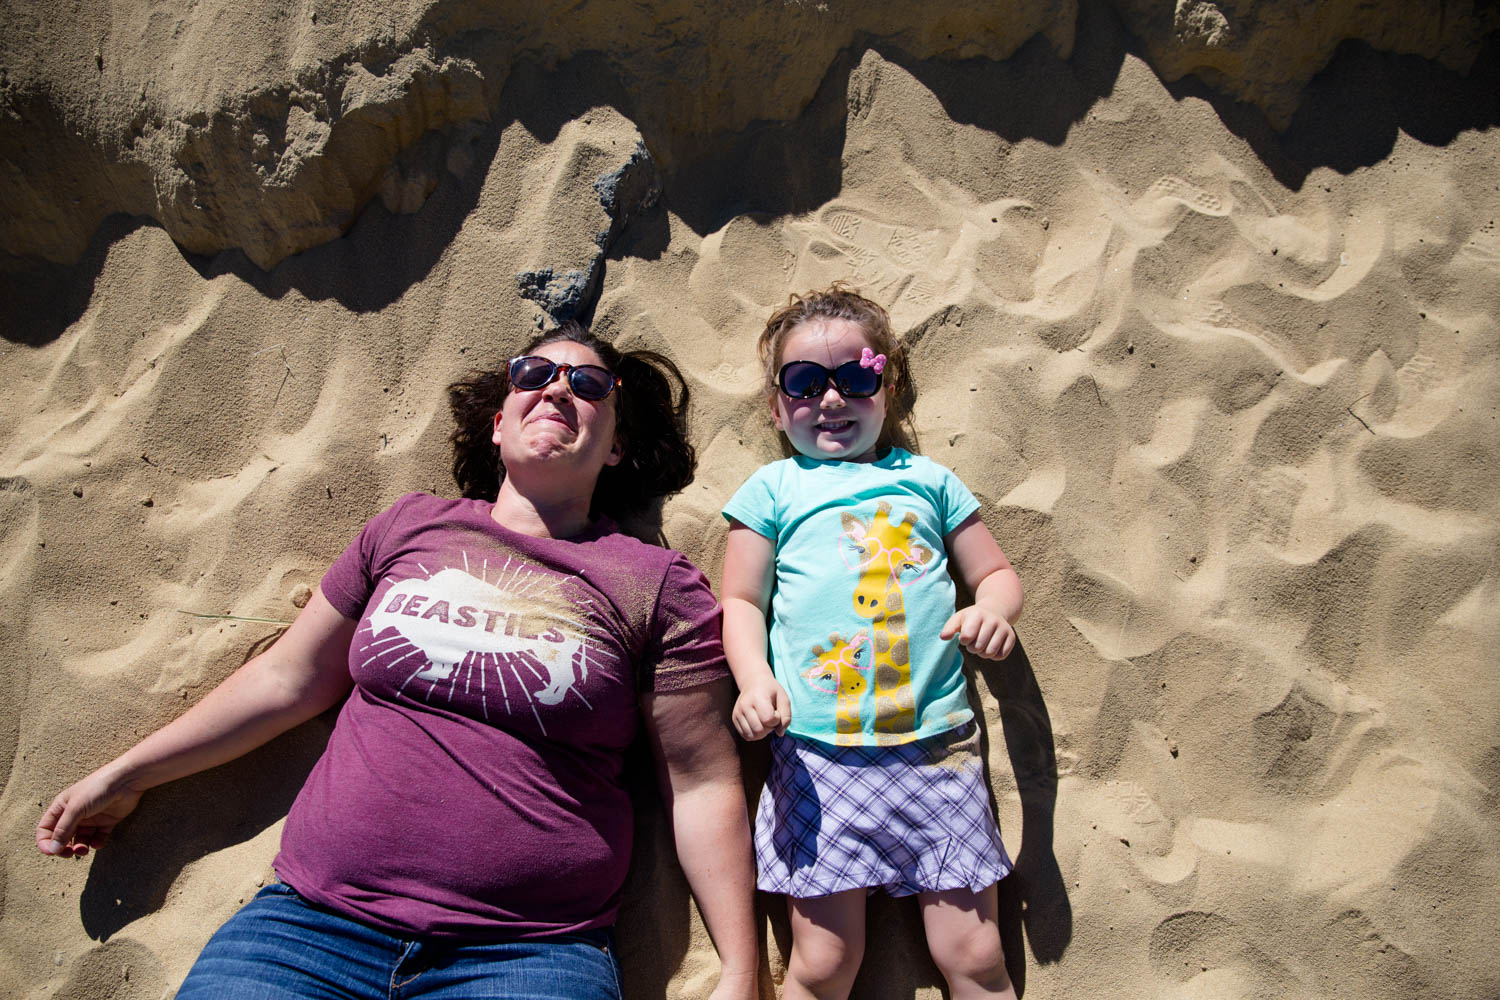 Mom and daughter lying in the sand at Camelsback Park in Boise Idaho during their family photo shoot. Both wearing sunglasses bc the sun is so high and bright. Daughter just threw sand on her mom and mom is squinting.